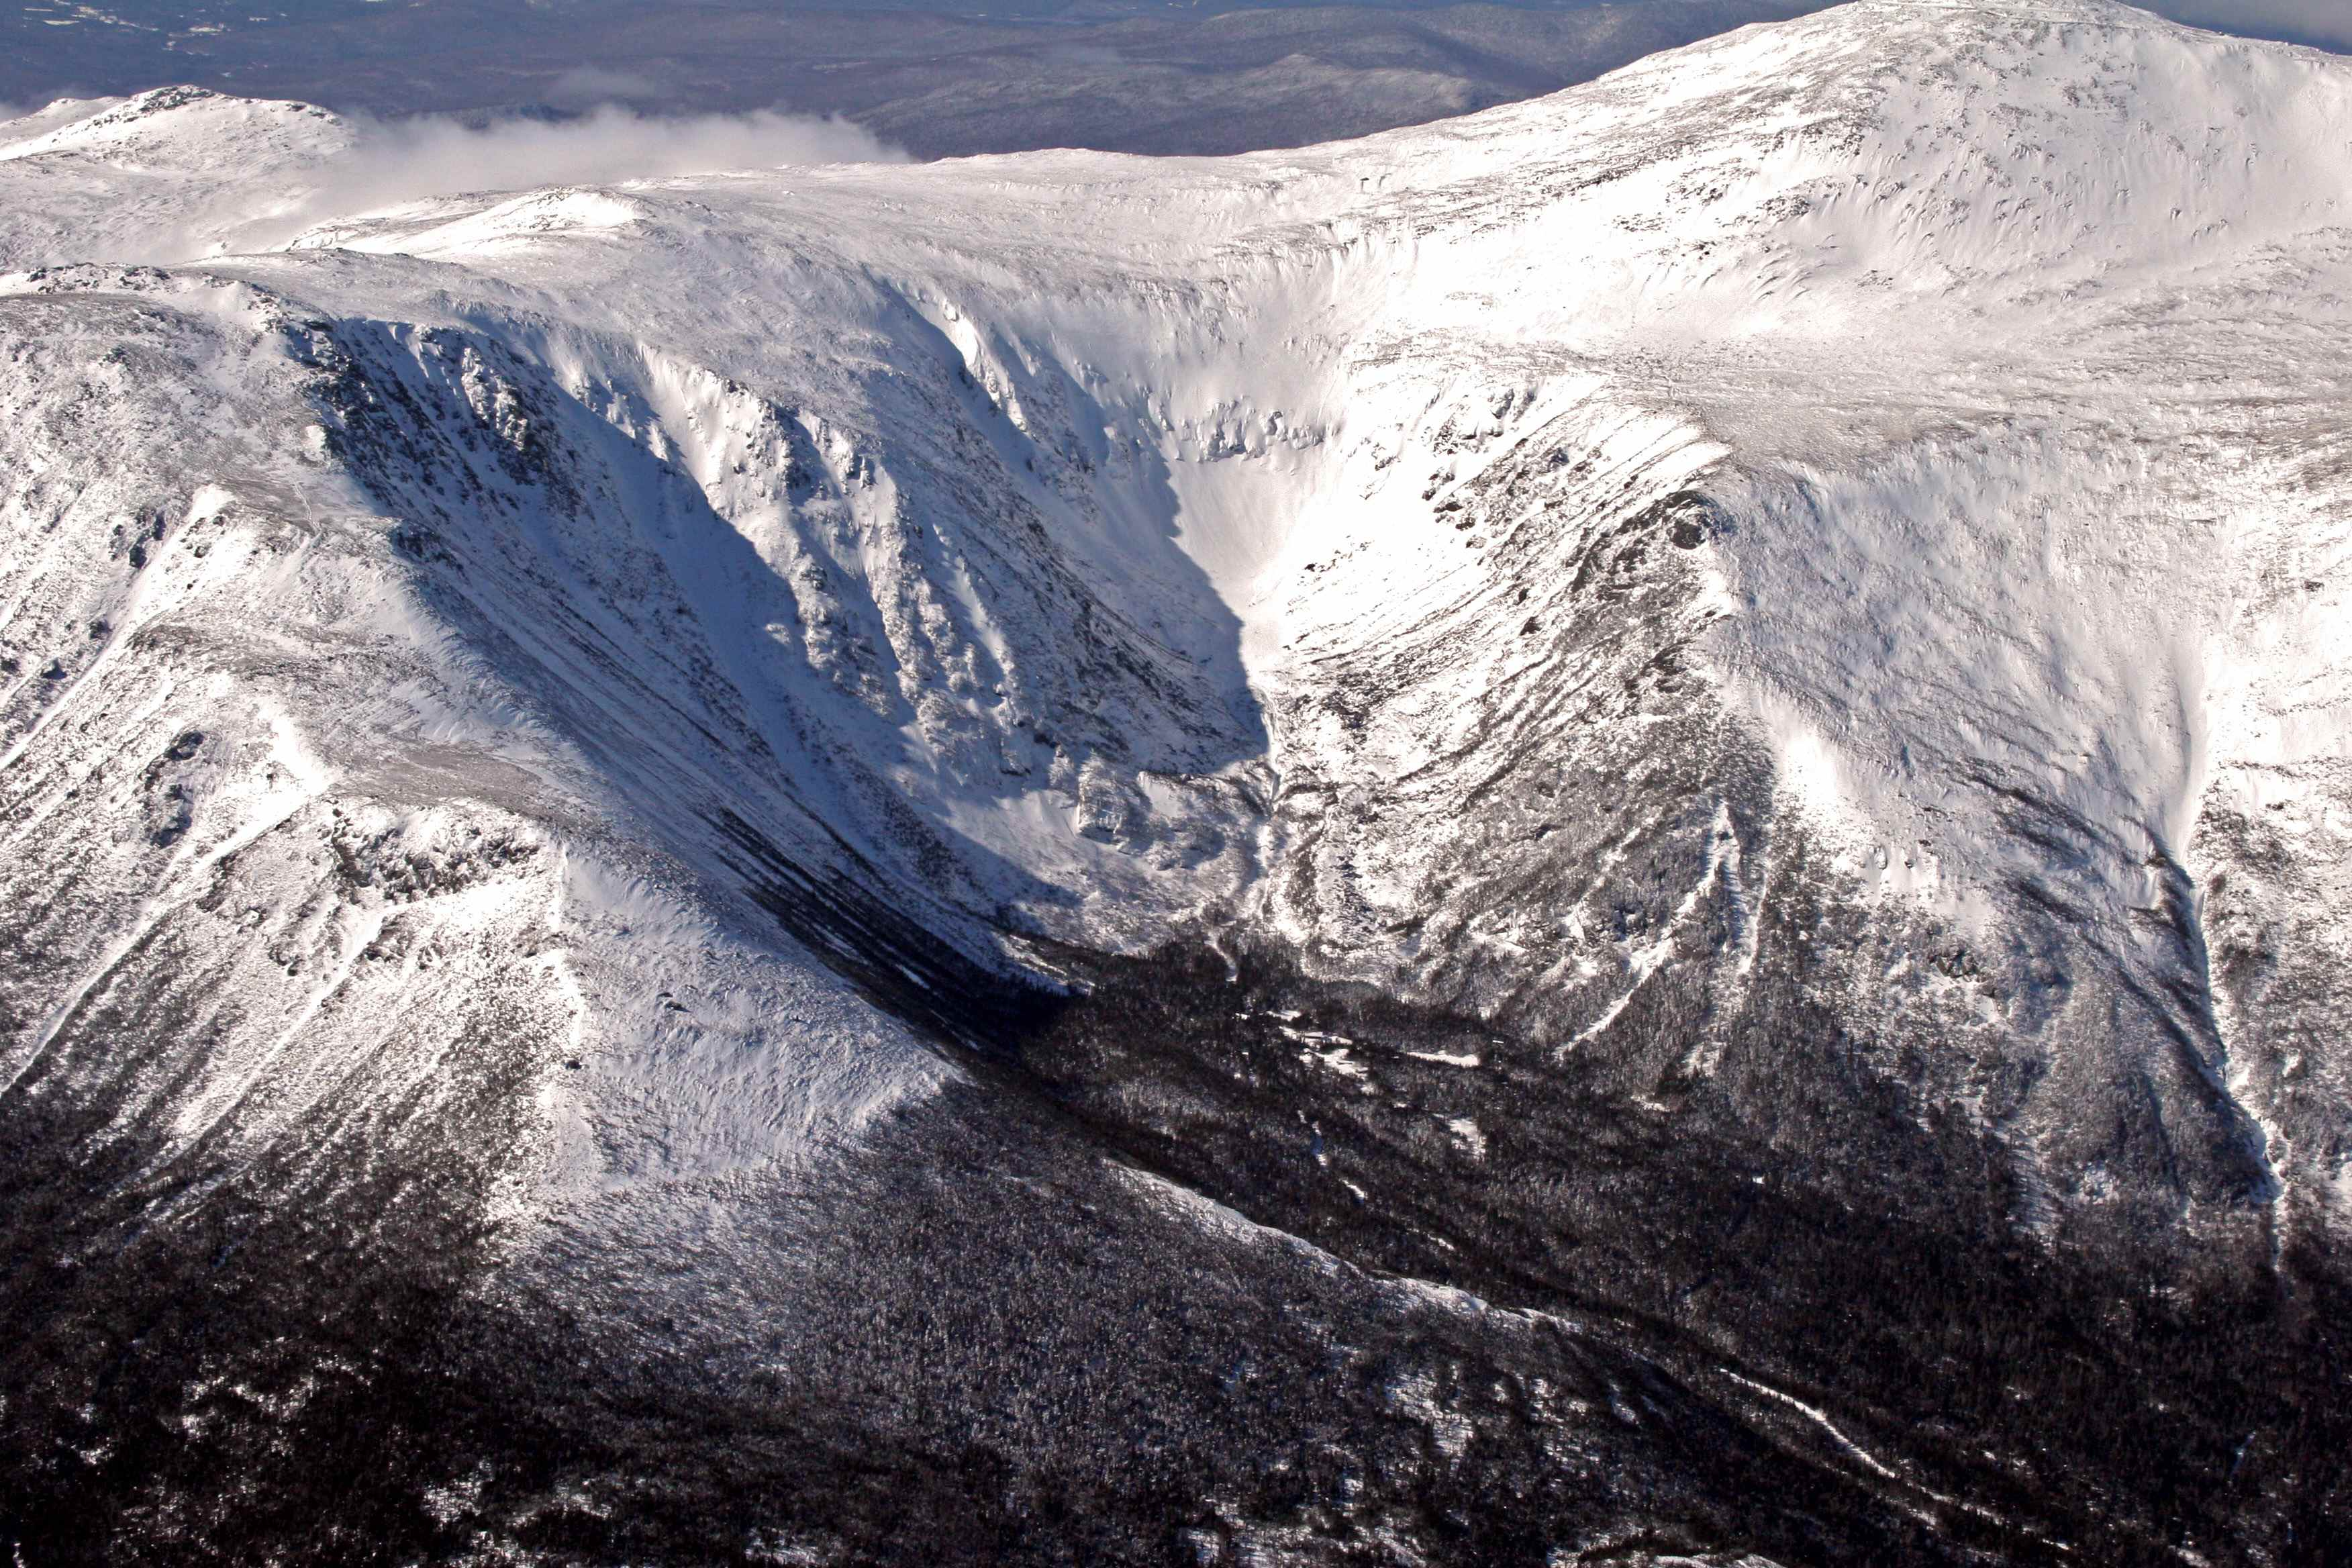 Tuckerman_EastSlopes_lores.jpg